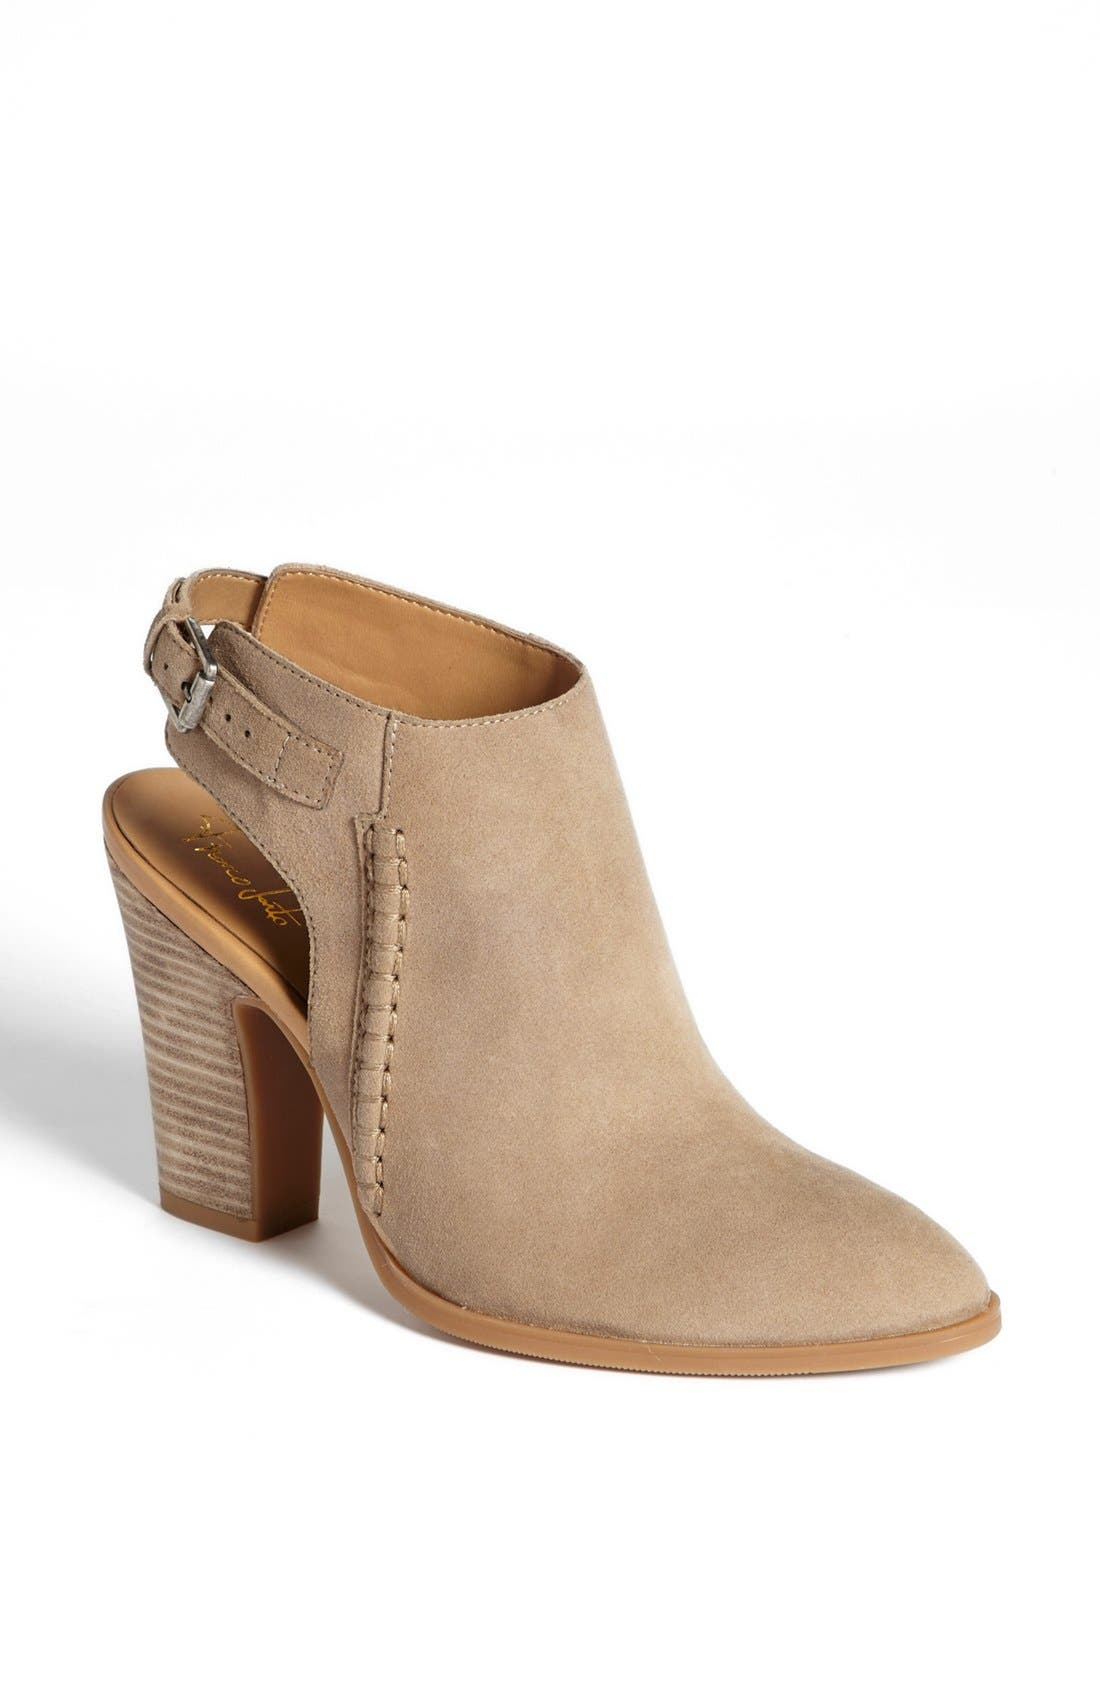 Alternate Image 1 Selected - Franco Sarto 'Adesso' Leather Bootie (Nordstrom Exclusive)